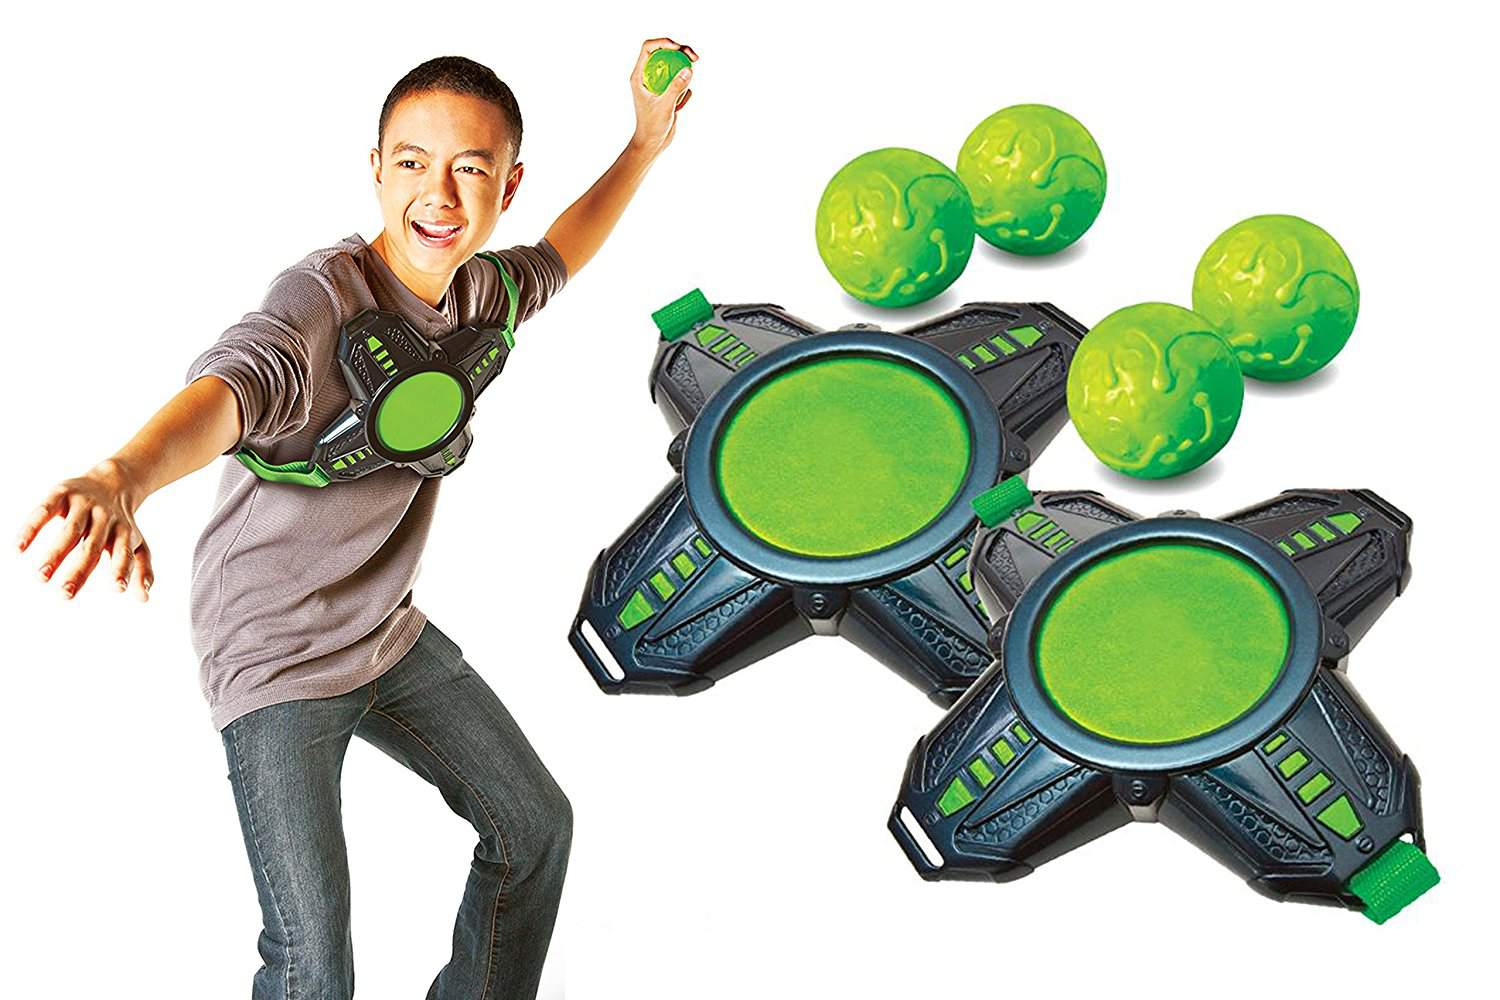 Product shot for slimeball with kid and game pieces - Top Outdoor Toys For Active Play